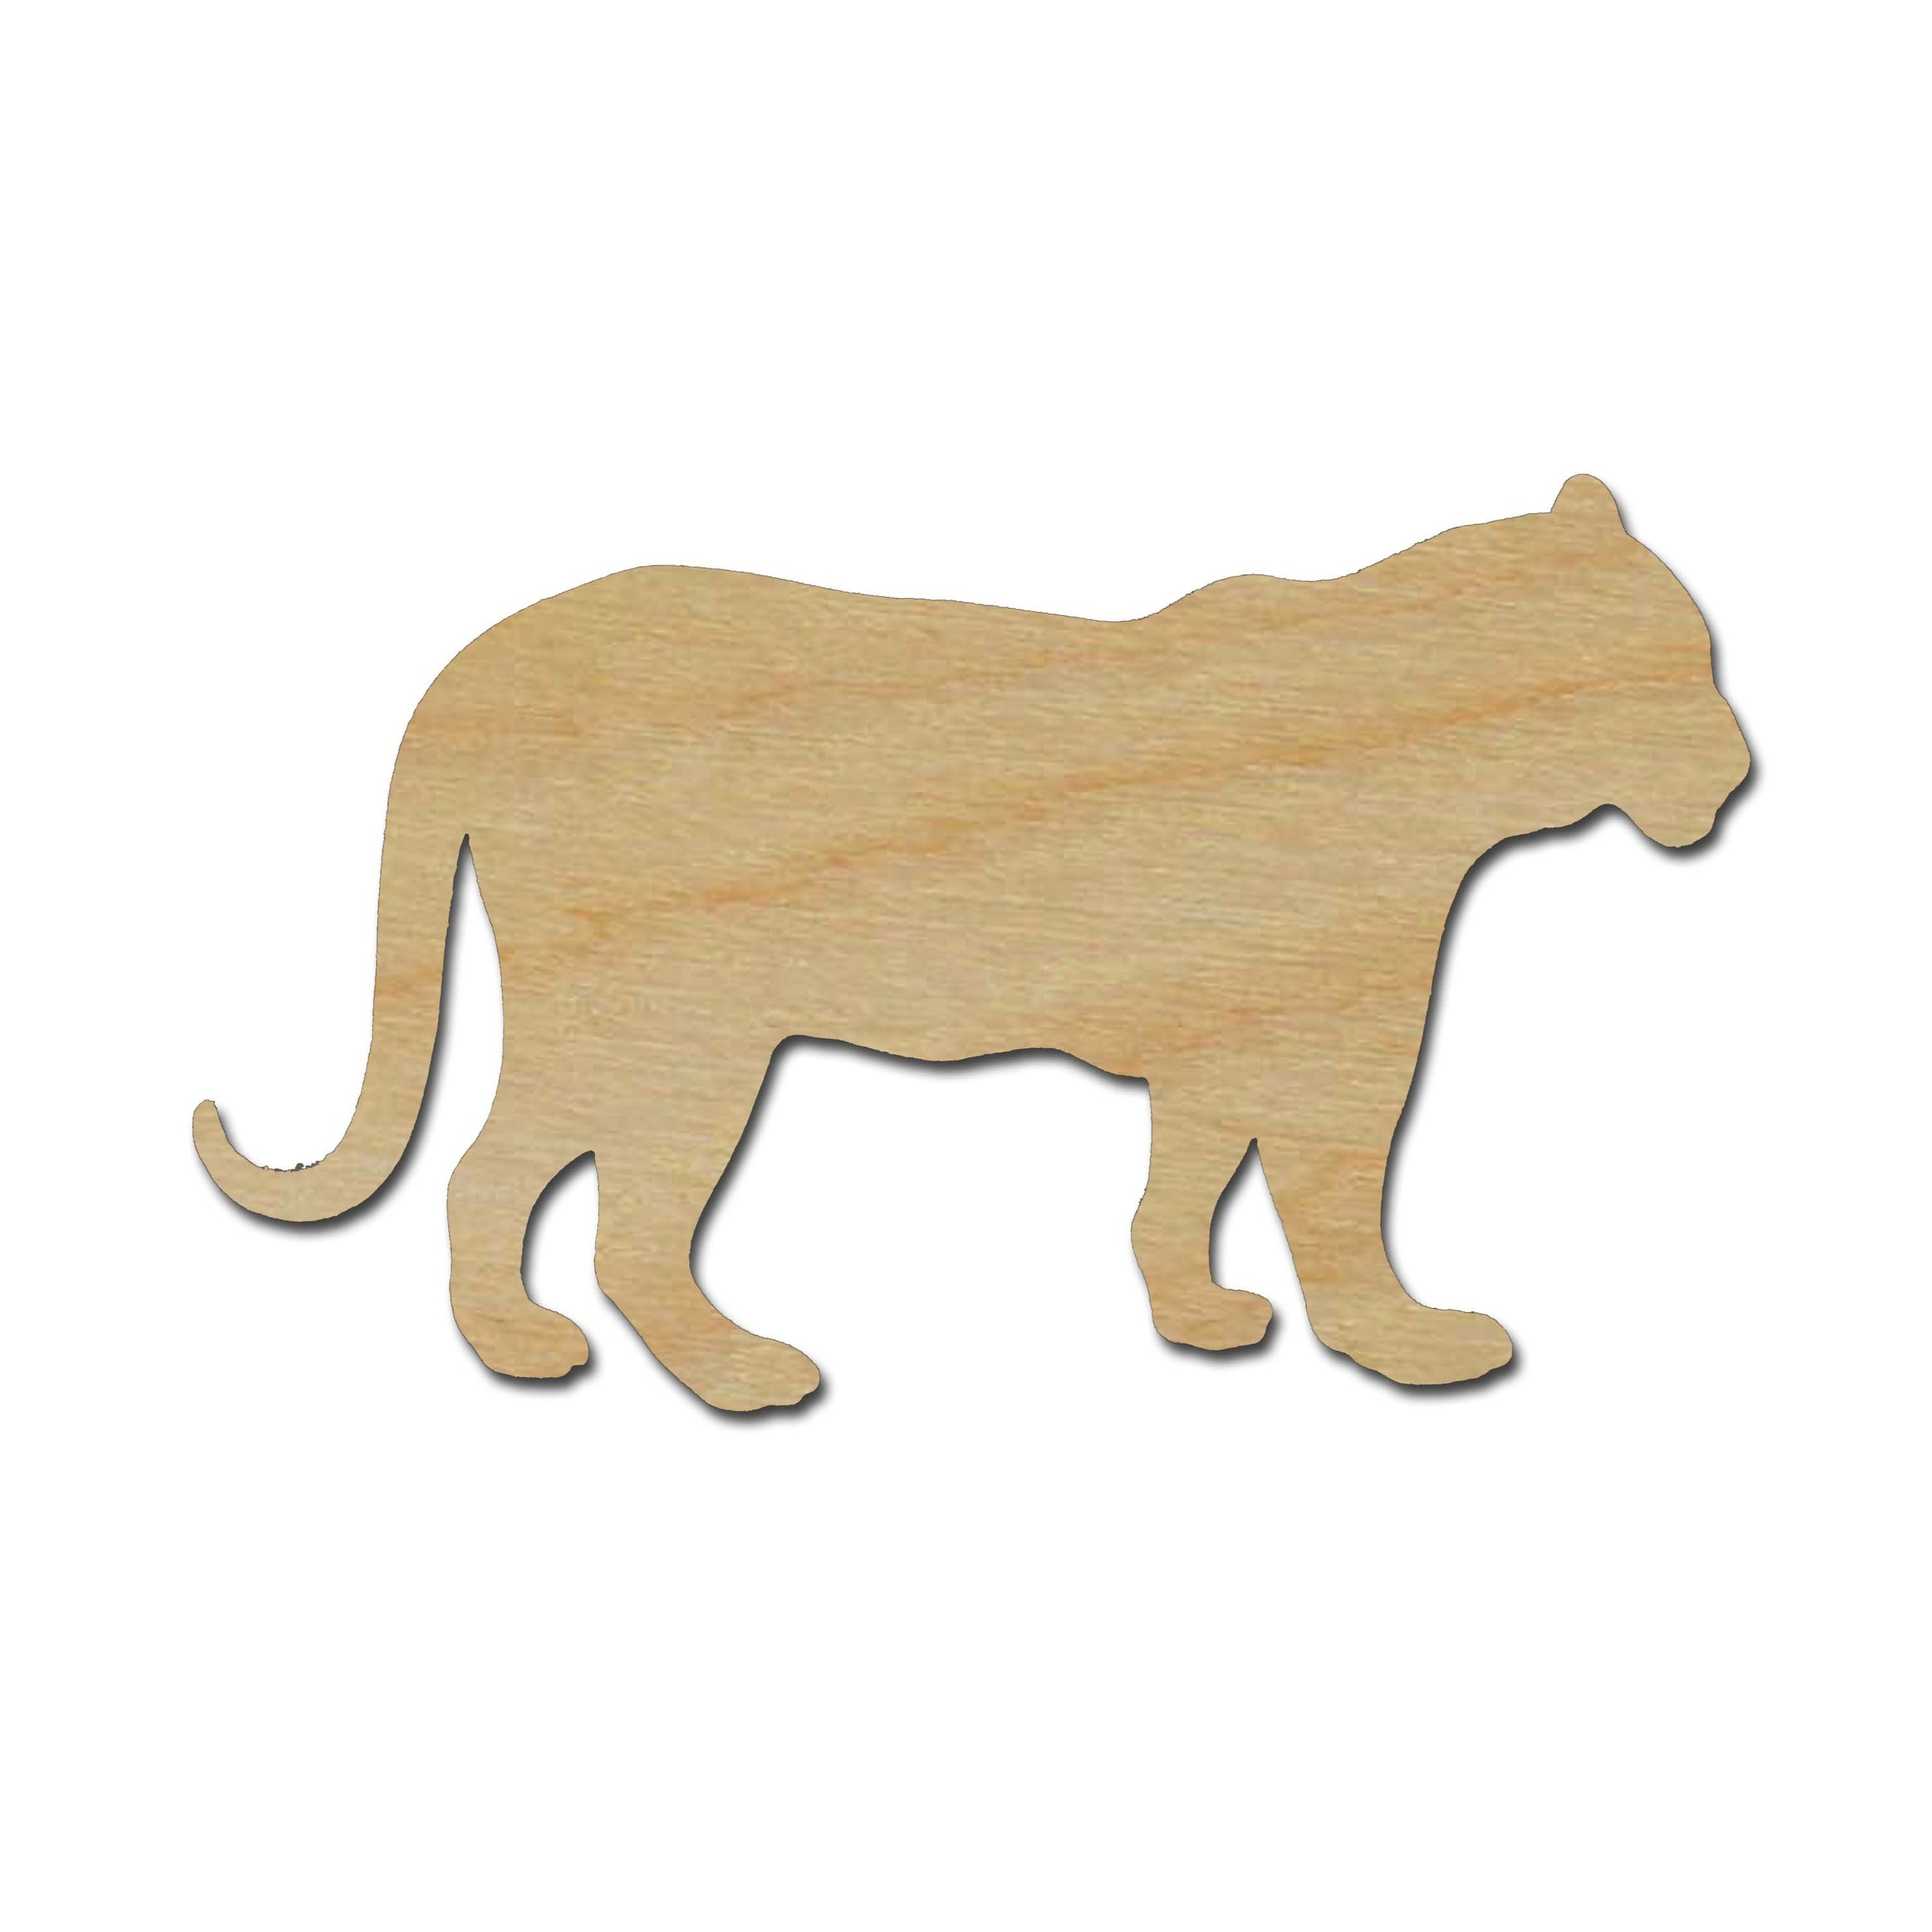 Tiger Shape Unfinished Wood Cut Out